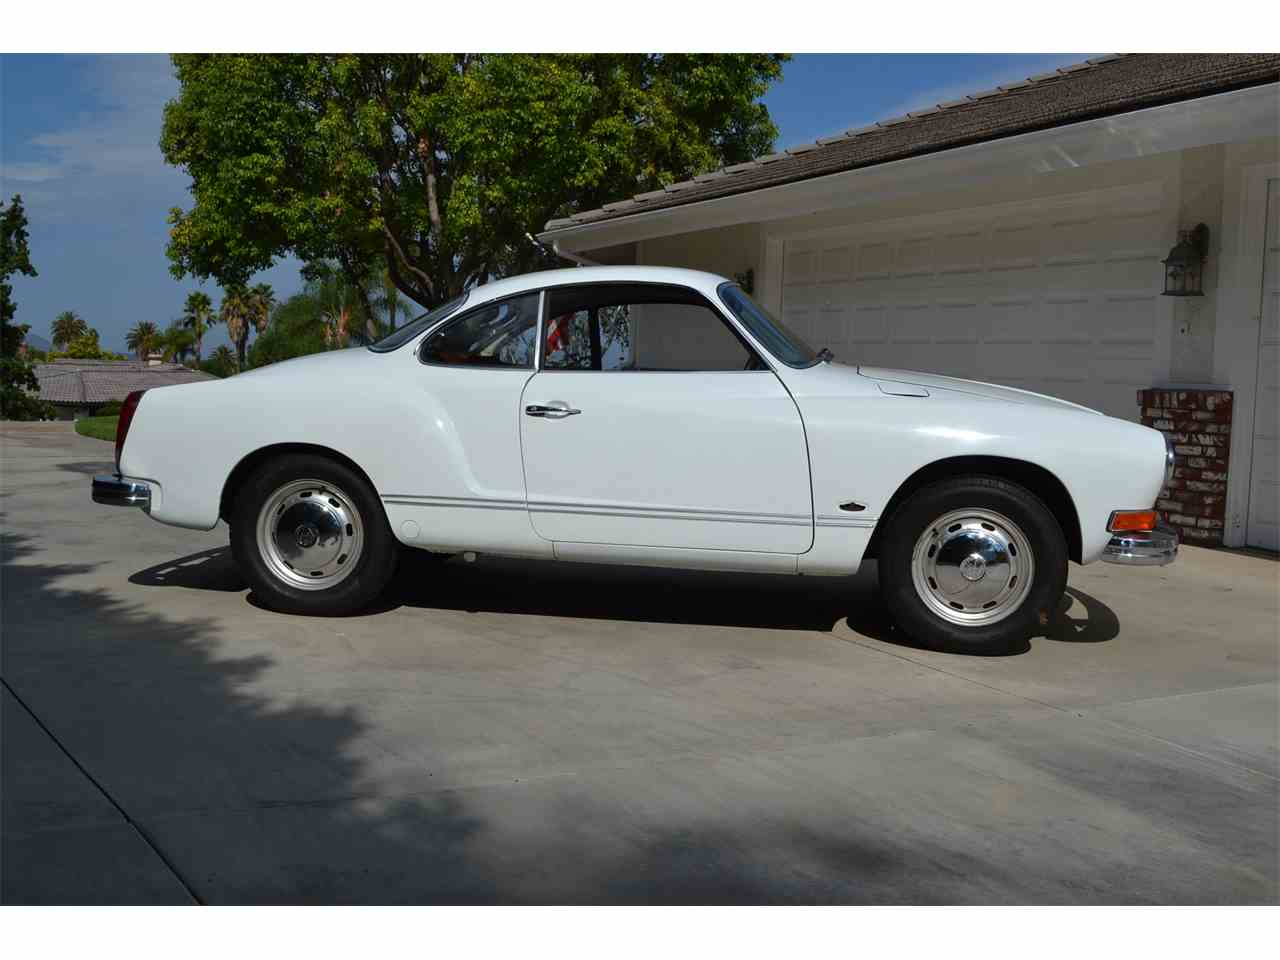 Large Picture of '74 Volkswagen Karmann Ghia located in California - $8,500.00 Offered by a Private Seller - LSR1